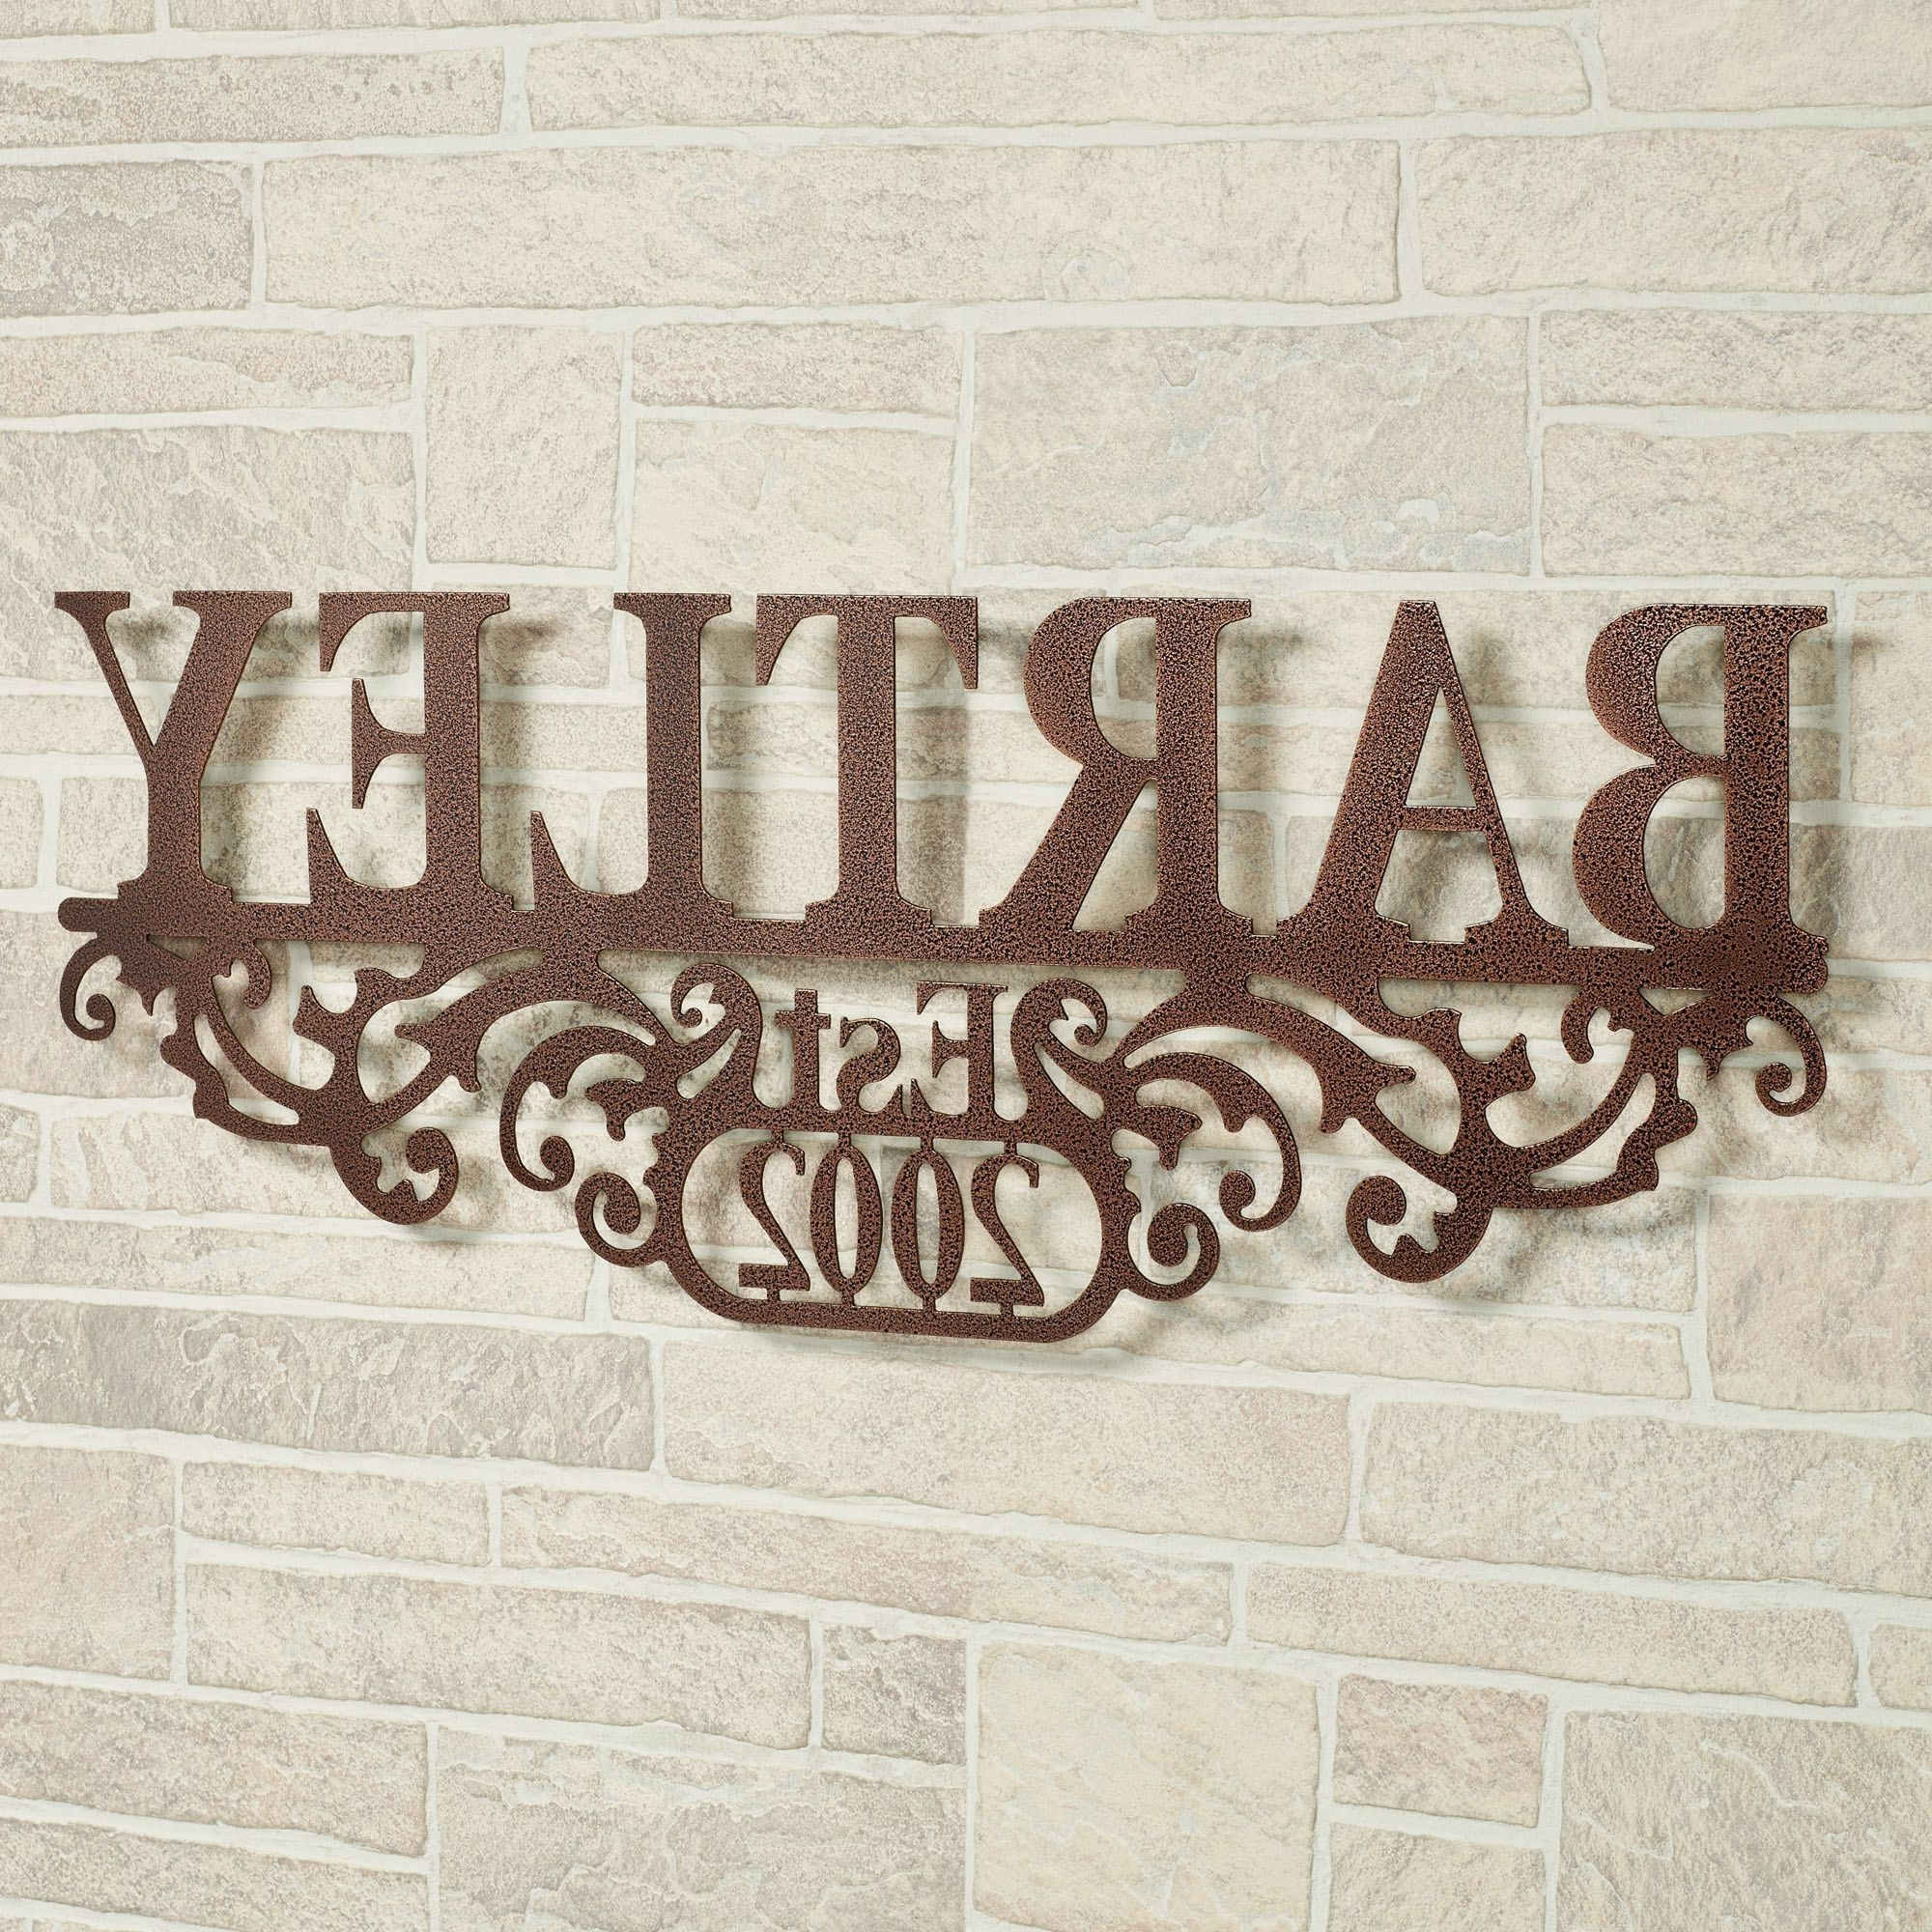 Most Popular Kinship Copper Family Name And Year Personalized Metal Wall Art Sign Throughout Personalized Metal Wall Art (View 11 of 20)